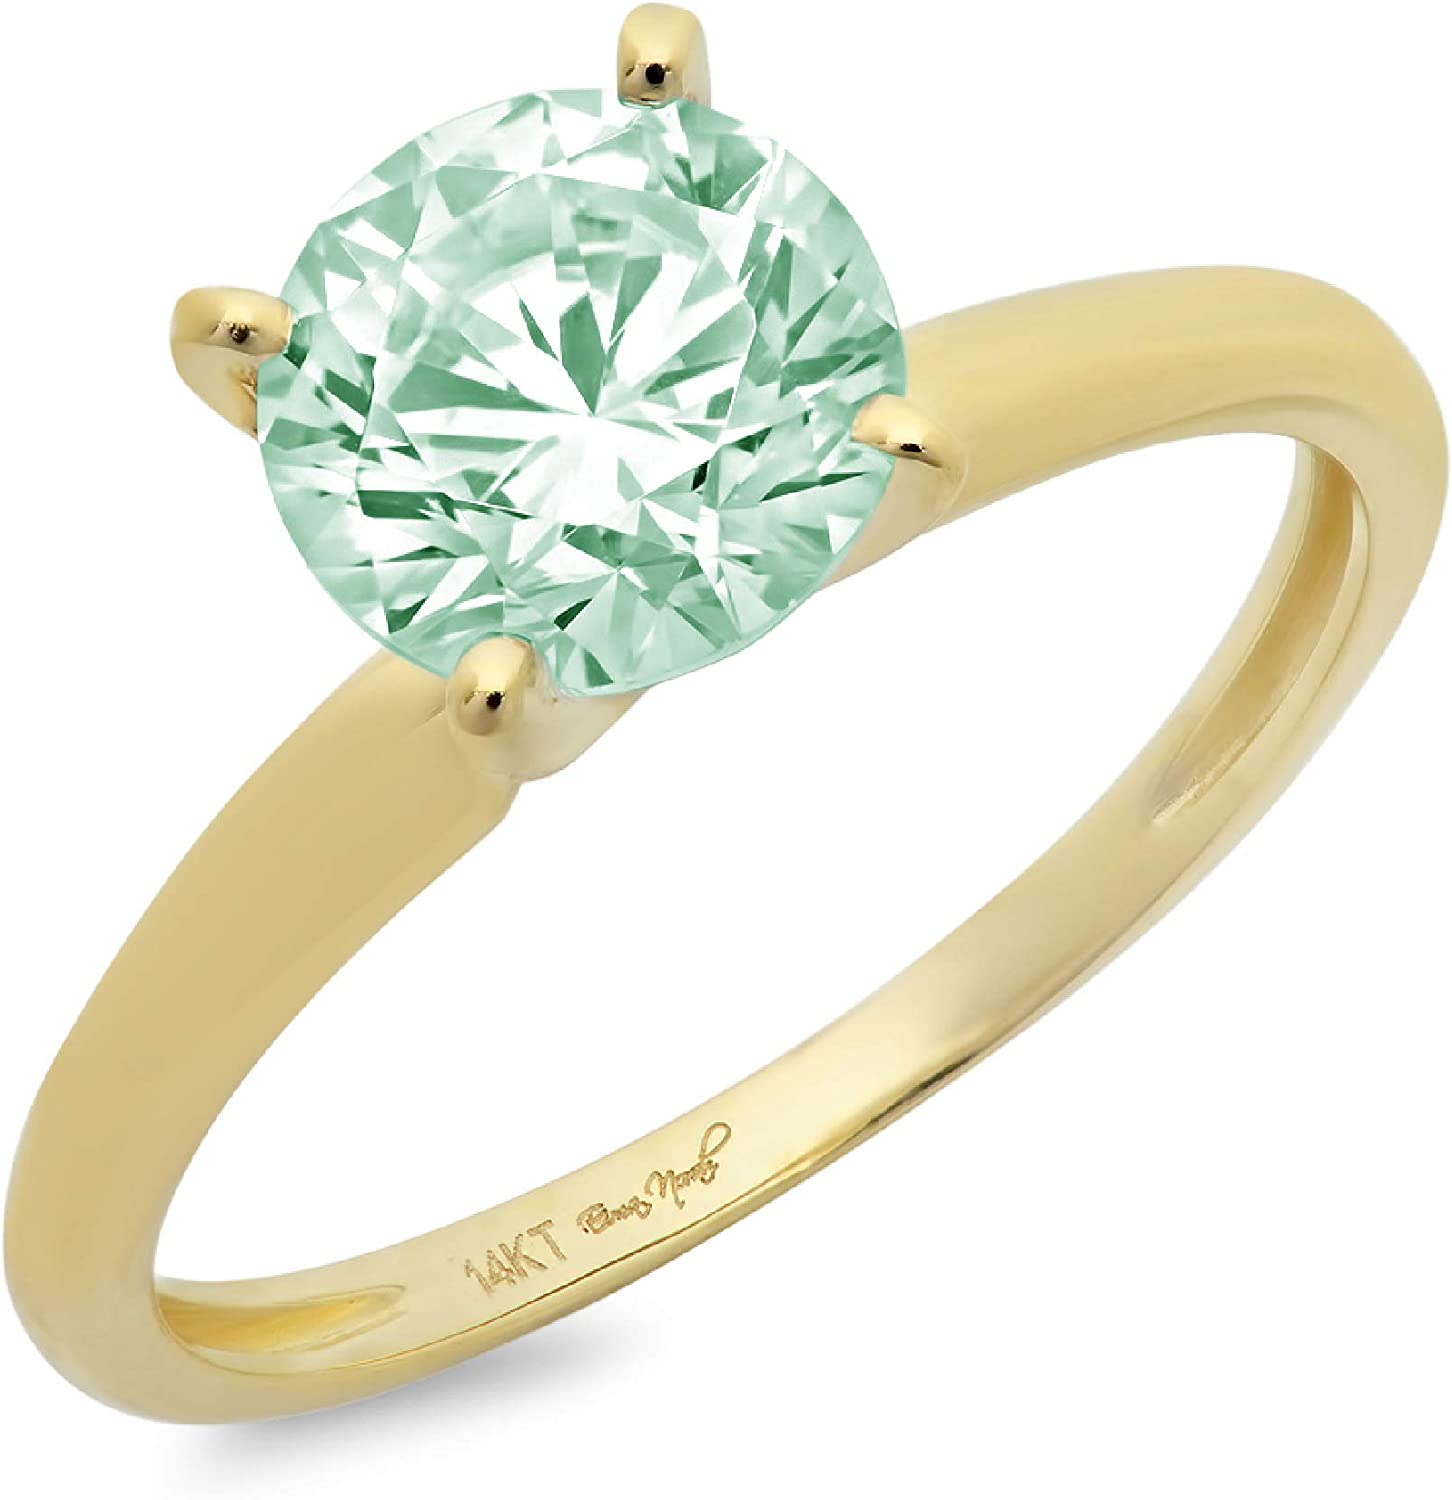 0.4ct Brilliant Round Cut Solitaire Light Sea Green Simulated Diamond Cubic Zirconia Ideal VVS1 D 4-Prong Engagement Wedding Bridal Promise Anniversary Ring in Solid 14k Yellow Gold for Women